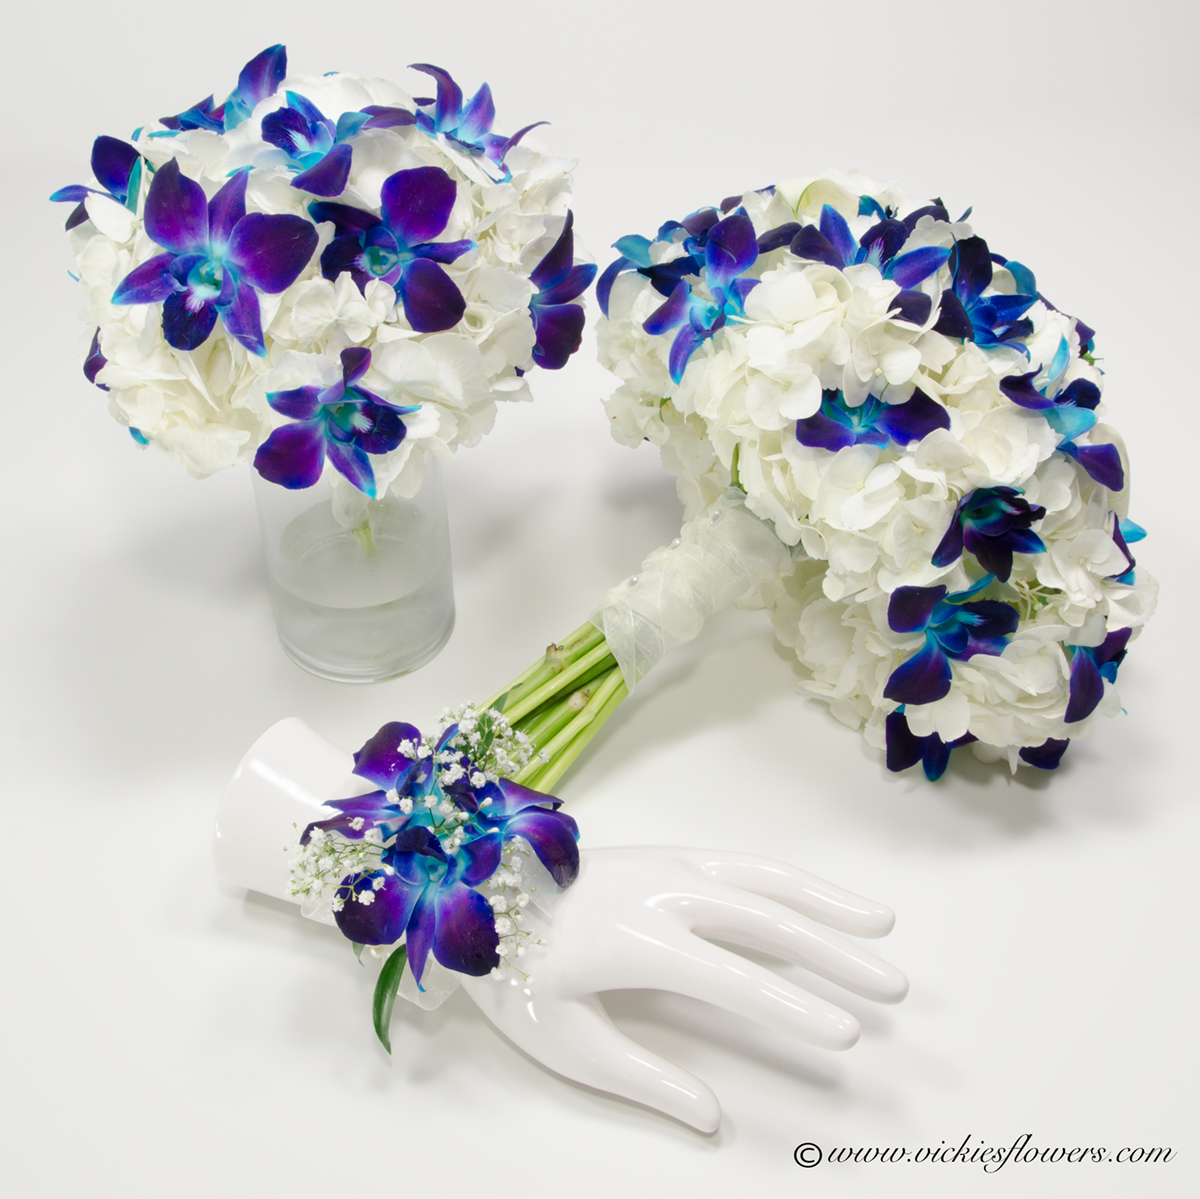 Wedding bouquets vickies flowers brighton colorado florist wb 022 bridal bouquet and bridesmaids bouquet made with white hydrangea and blue dendrobium orchids bouquet is wrapped with white sheer ribbon and izmirmasajfo